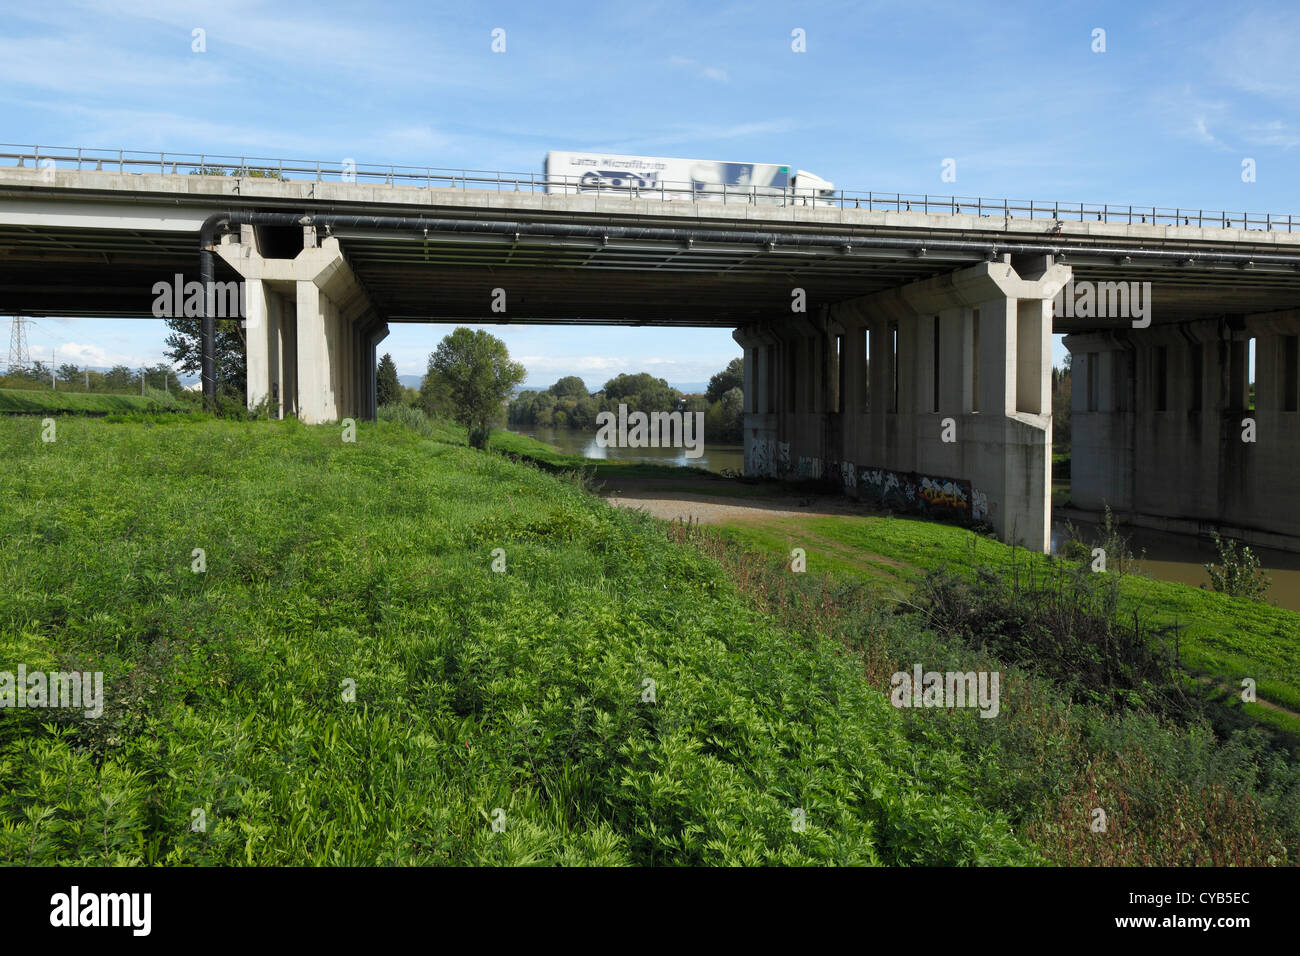 Viaduct of Indiano, Florence Stock Photo